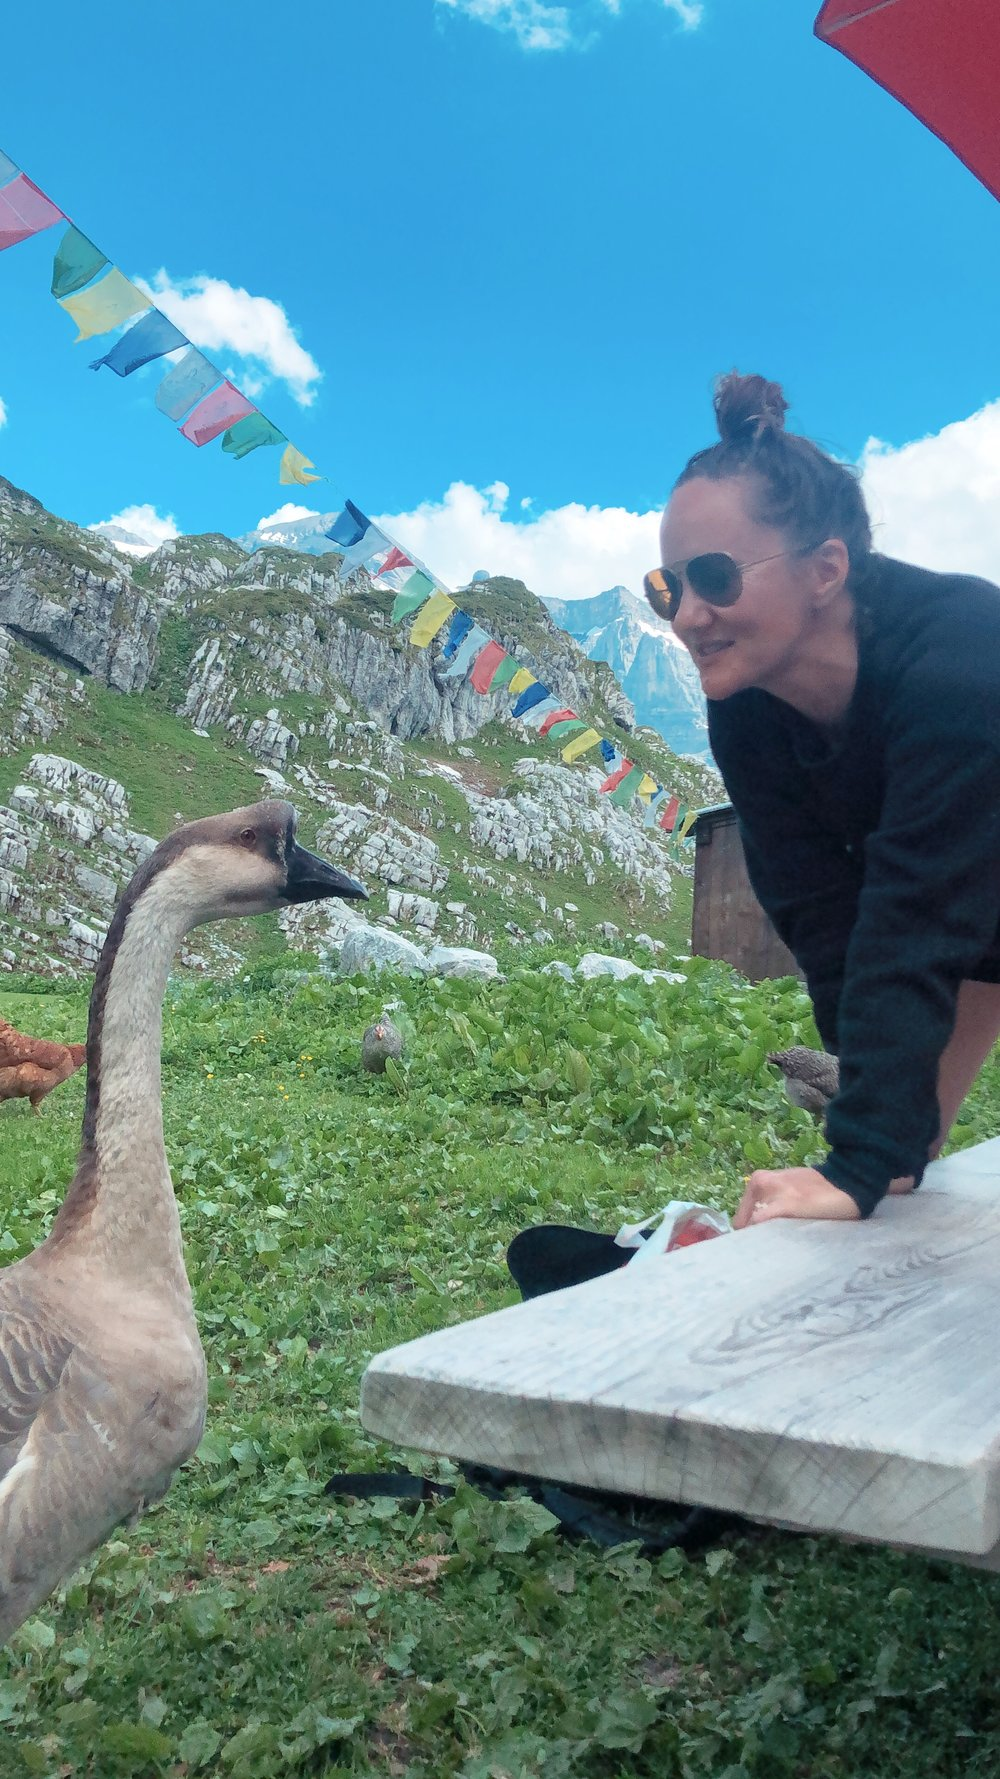 On an amazing hike in the French alps making a new friend